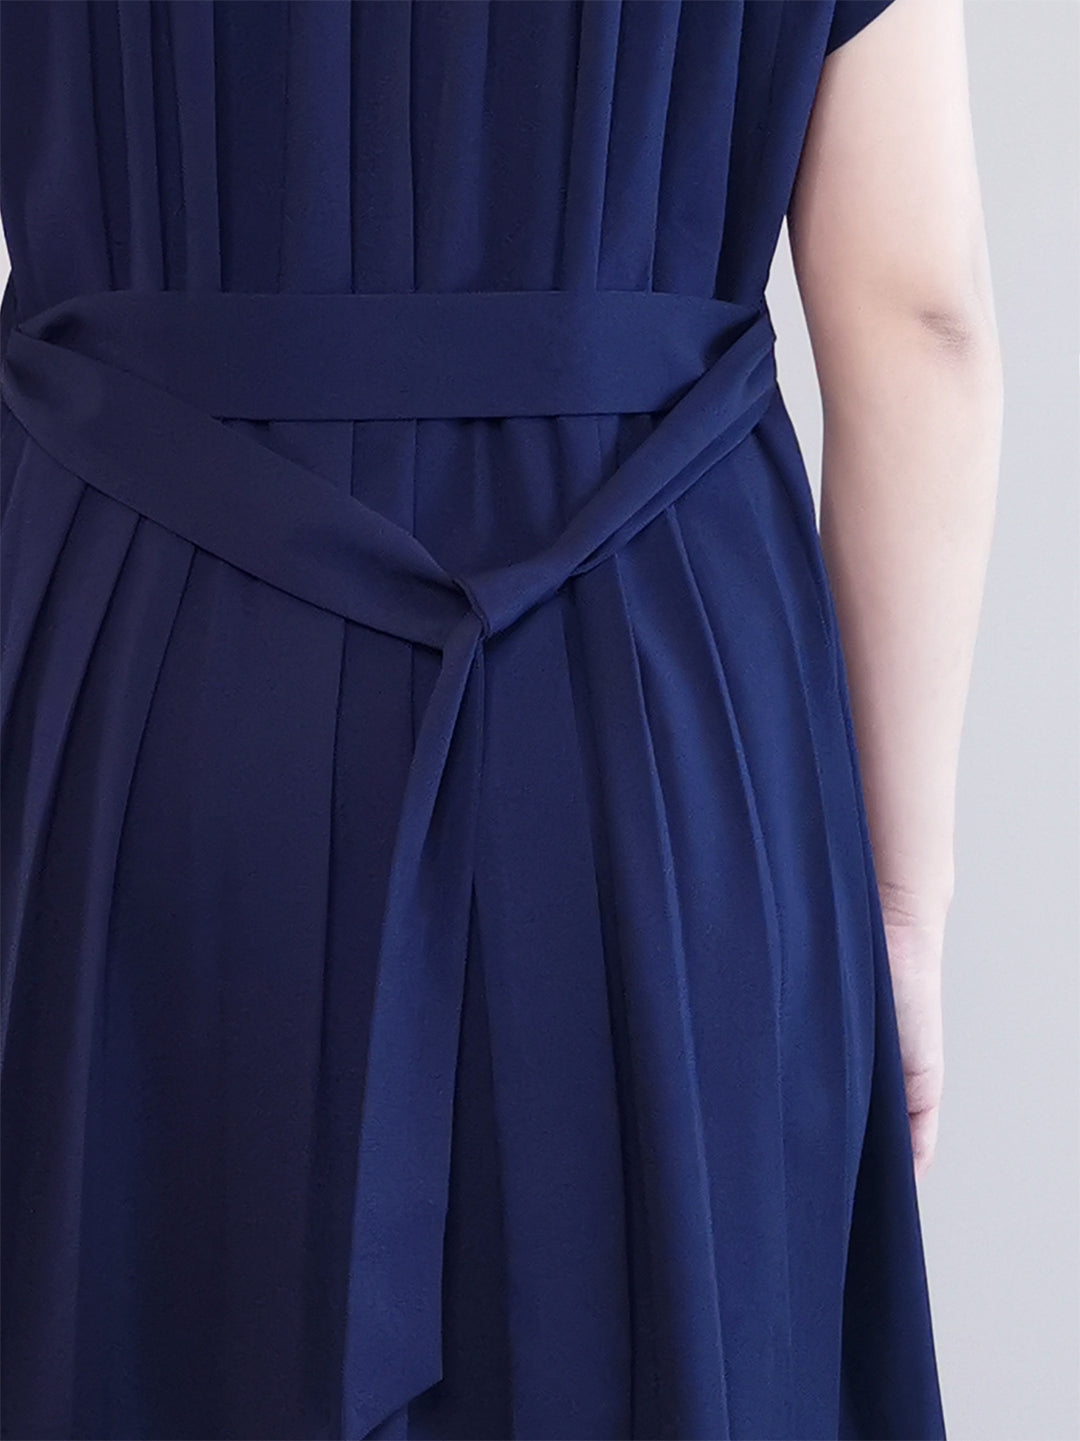 Pleated Detail Dress -Navy